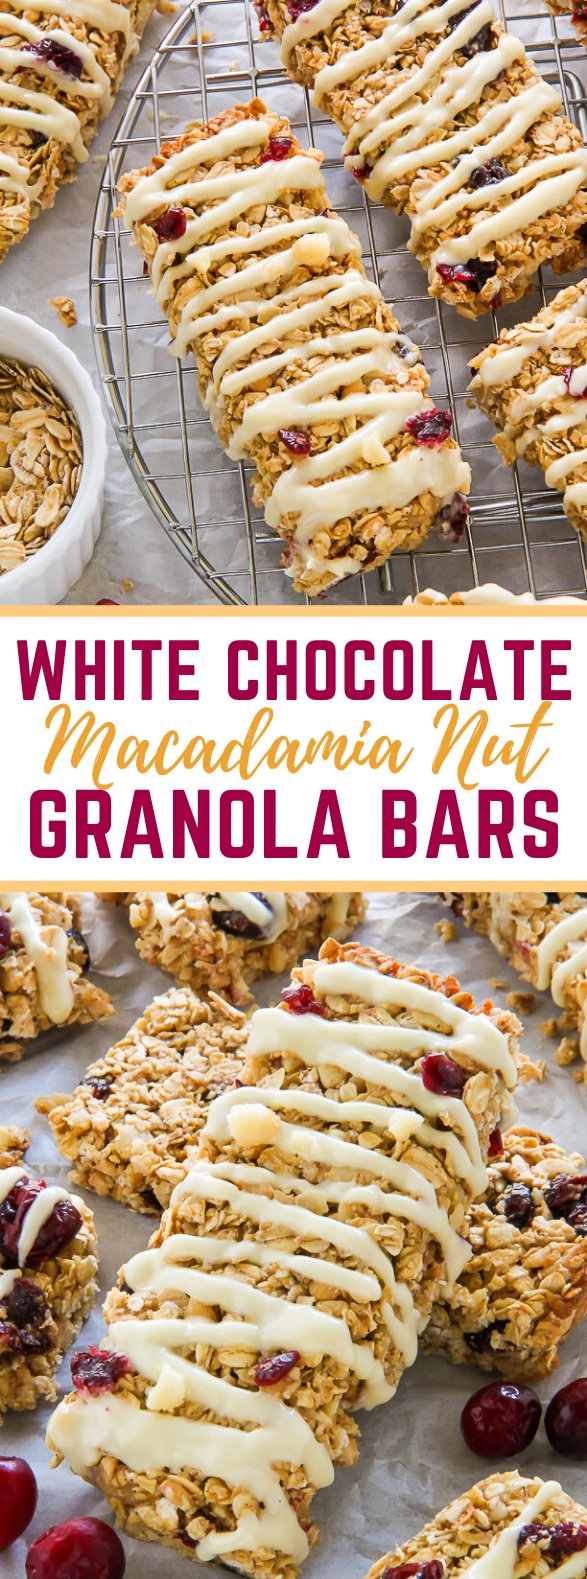 White Chocolate Cranberry Macadamia Nut Granola Bars #healthy #diet